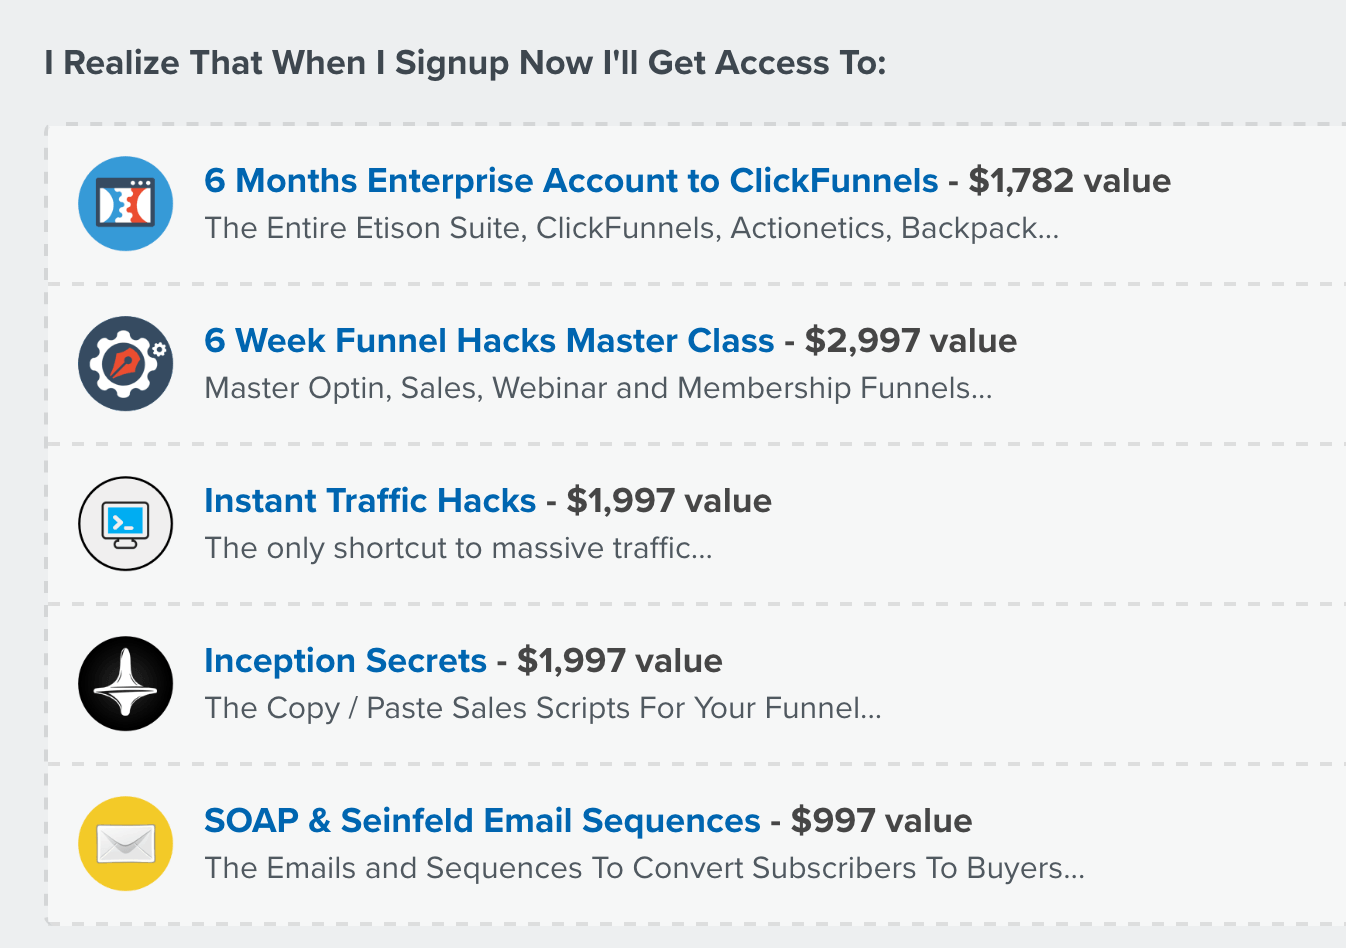 How To Integrate Clickfunnels And Mailchimp